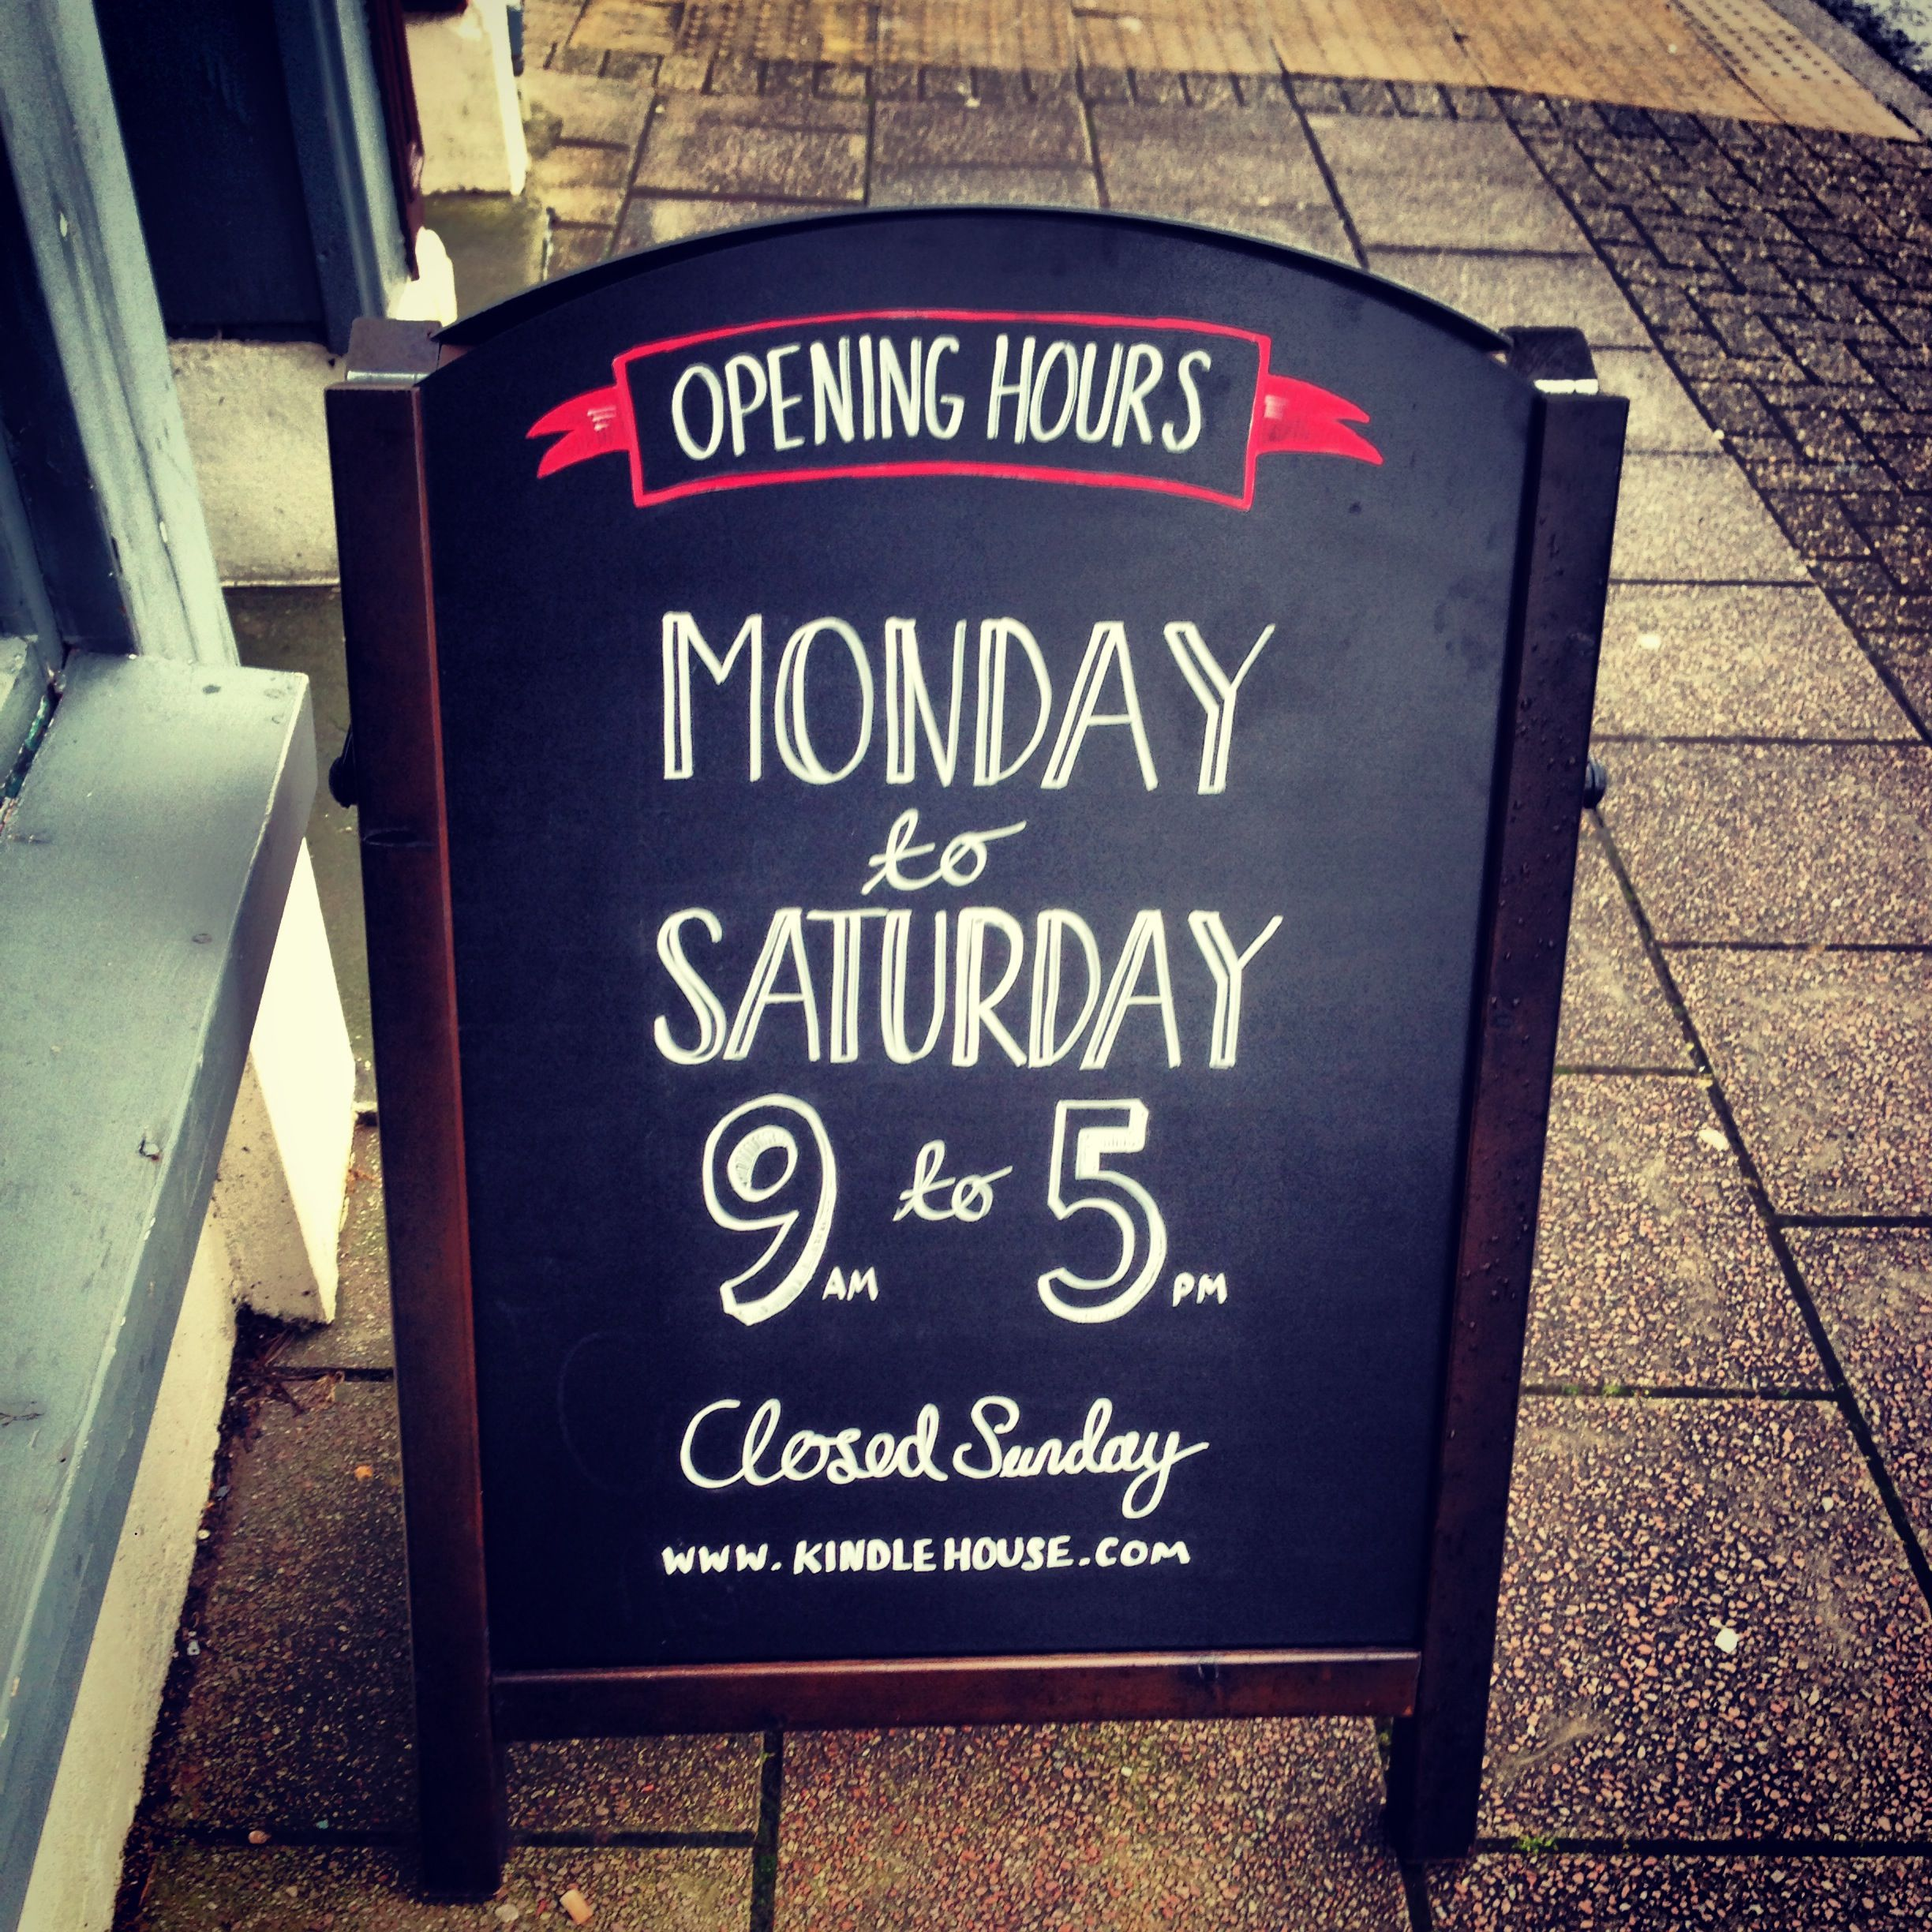 Opening hours, hand lettering for Kindle House